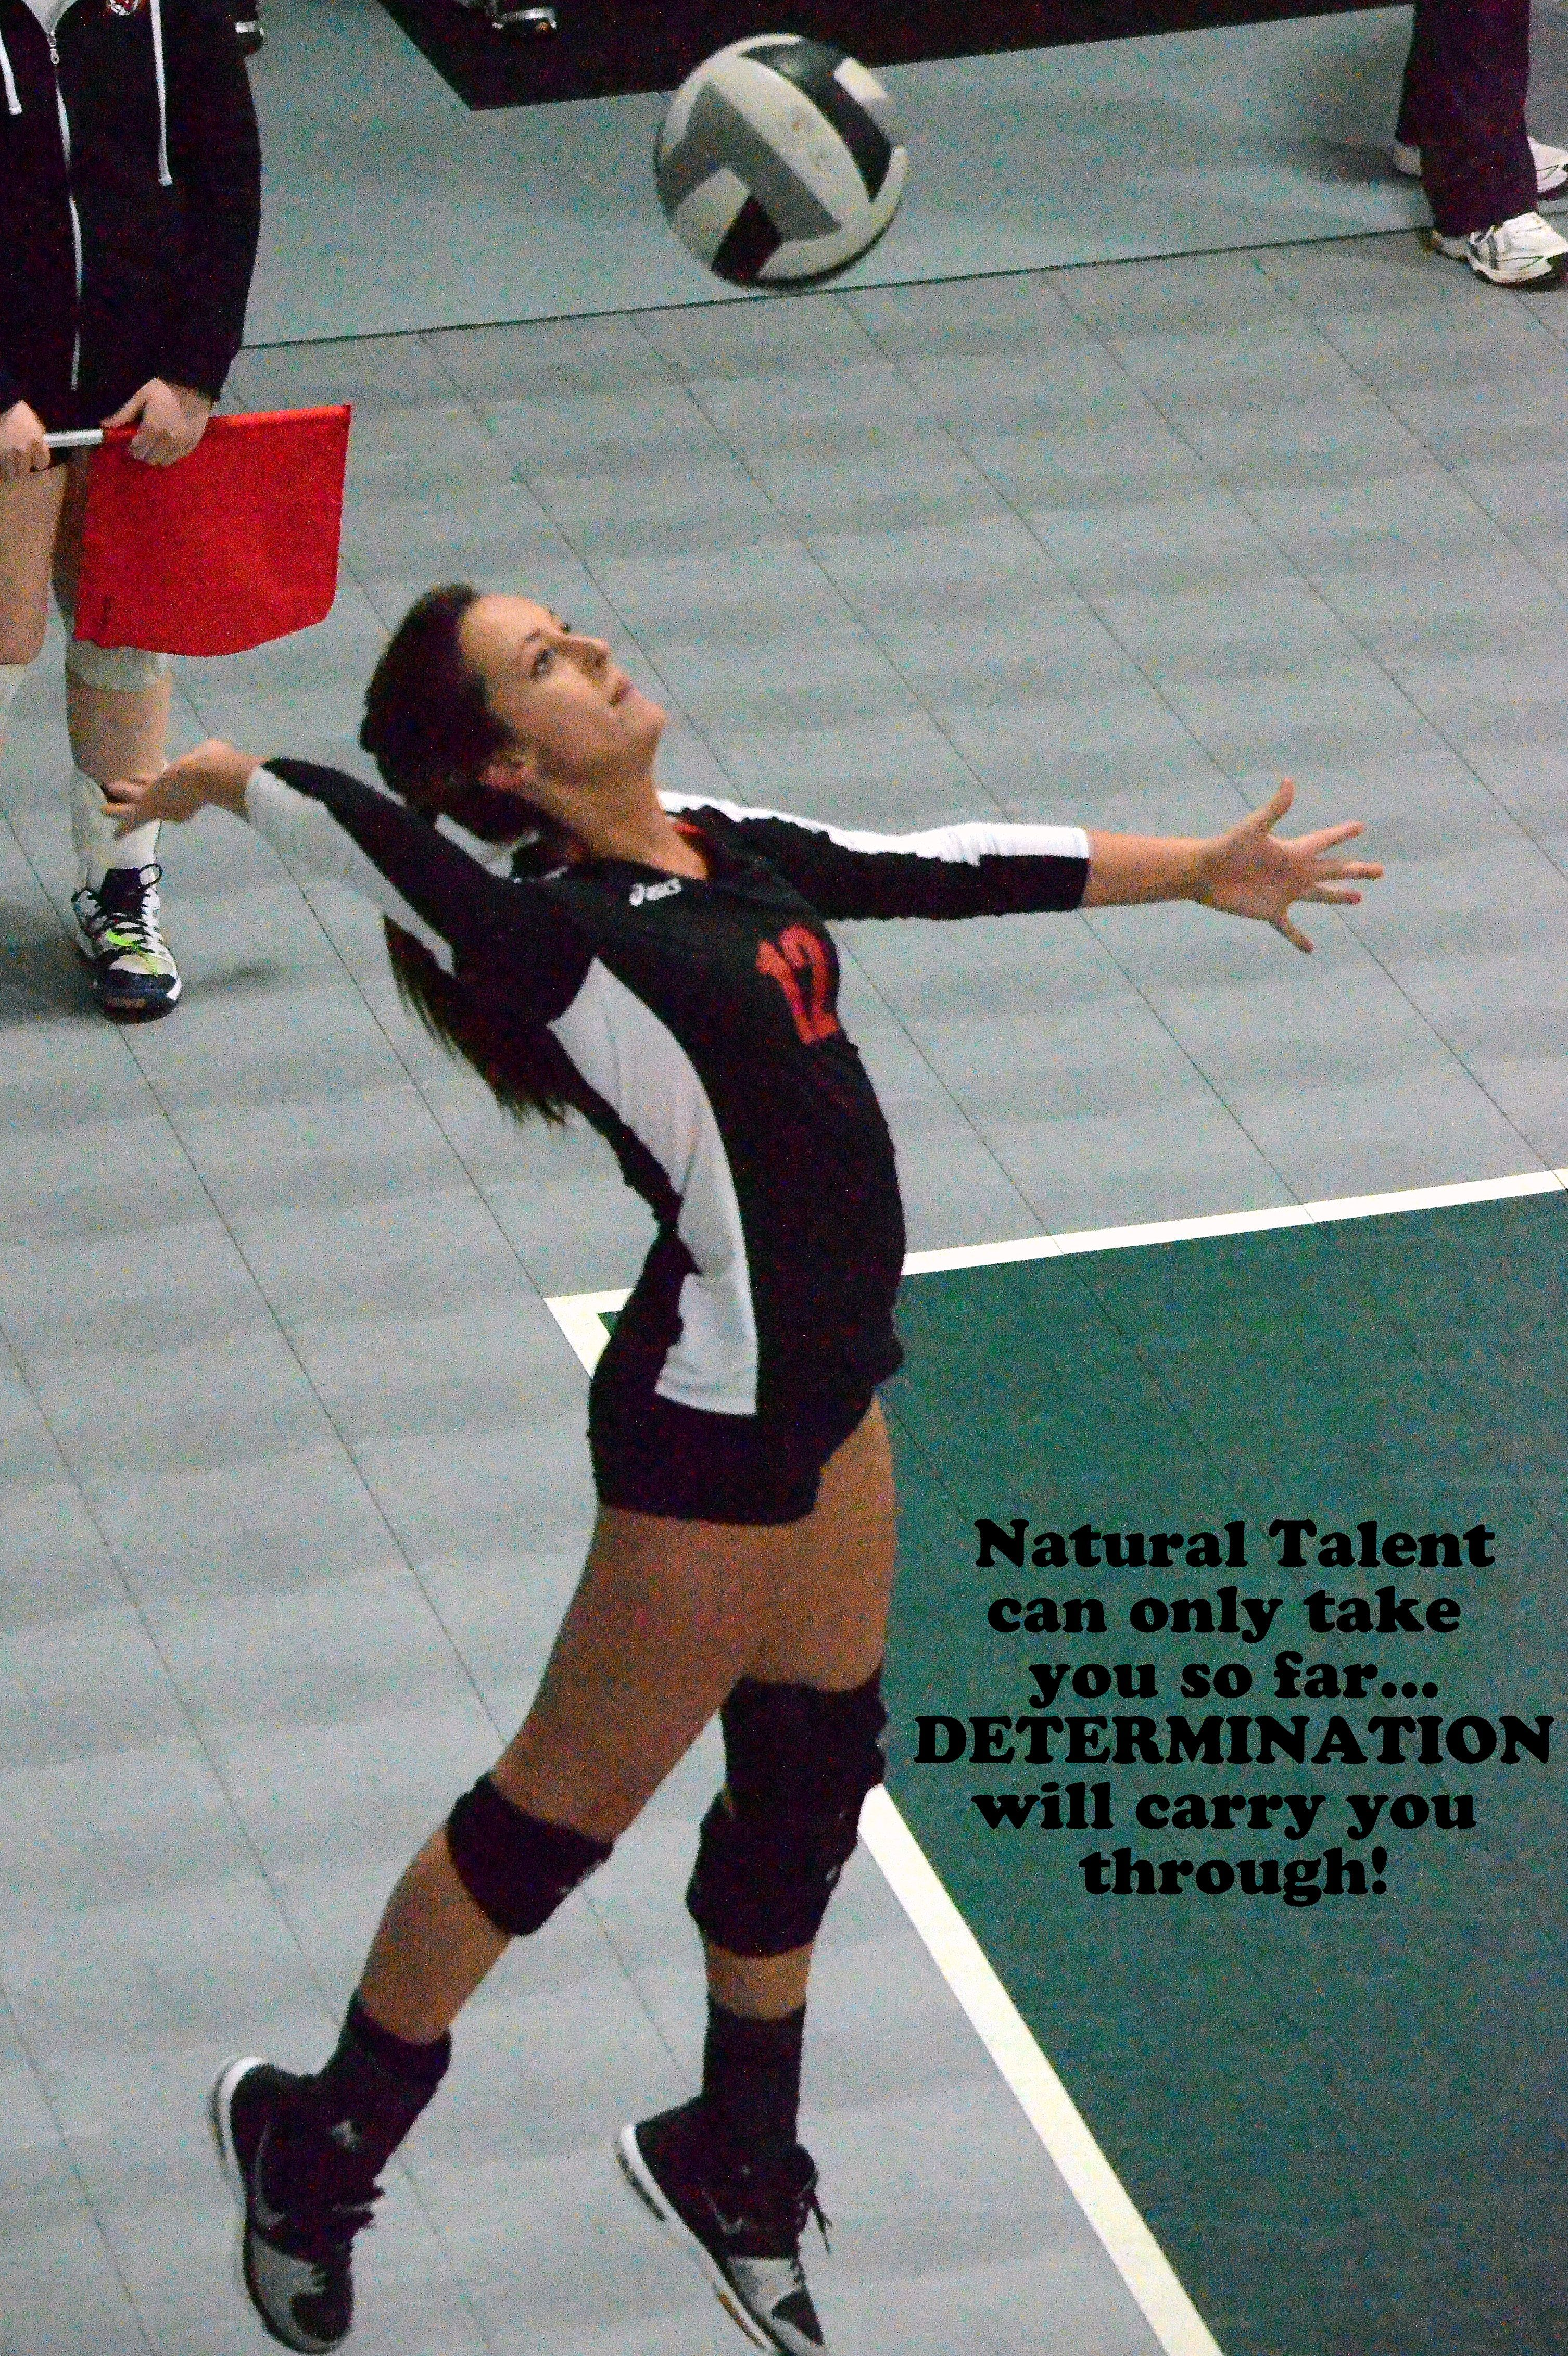 Volleyball Talent Will Only Get You So Far Determination Will Carry You Through Griffin Ble Volleyball Inspiration Volleyball Posters Motivational Posters